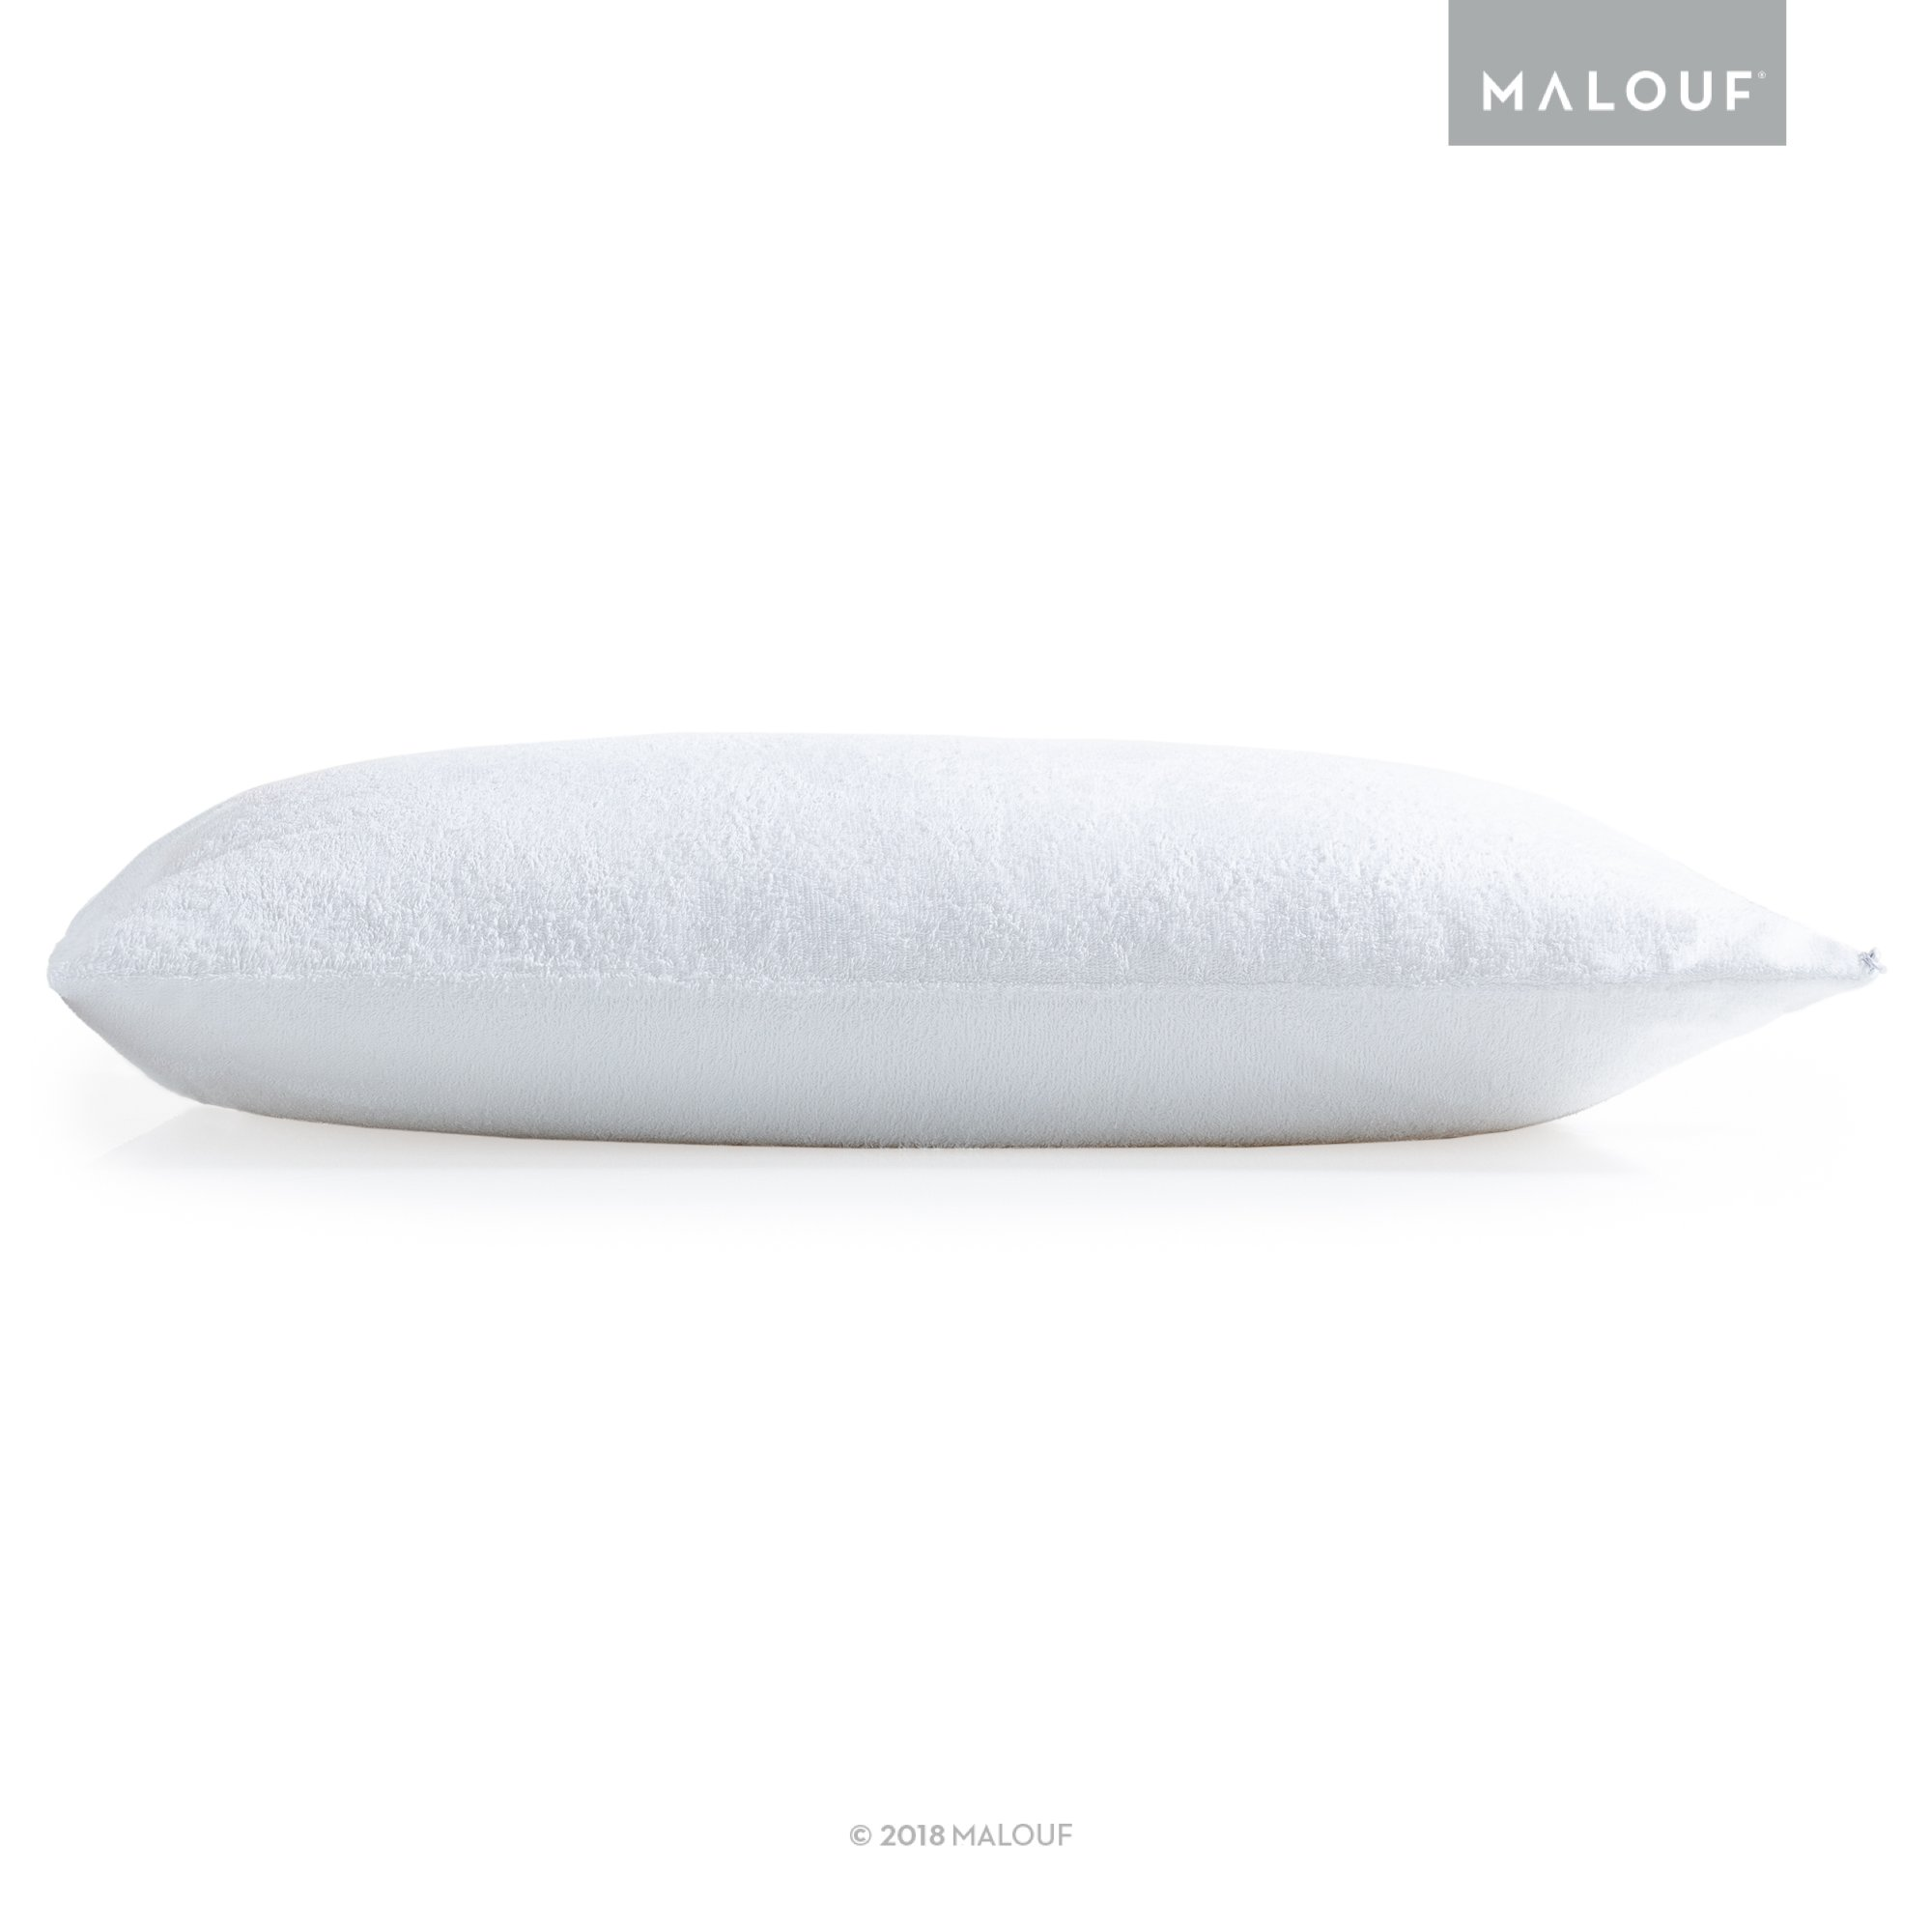 Sleep Tite Hypoallergenic 100% Waterproof Pillow Protector- 15-Year Warranty - Set of 2 - Standard by MALOUF (Image #2)